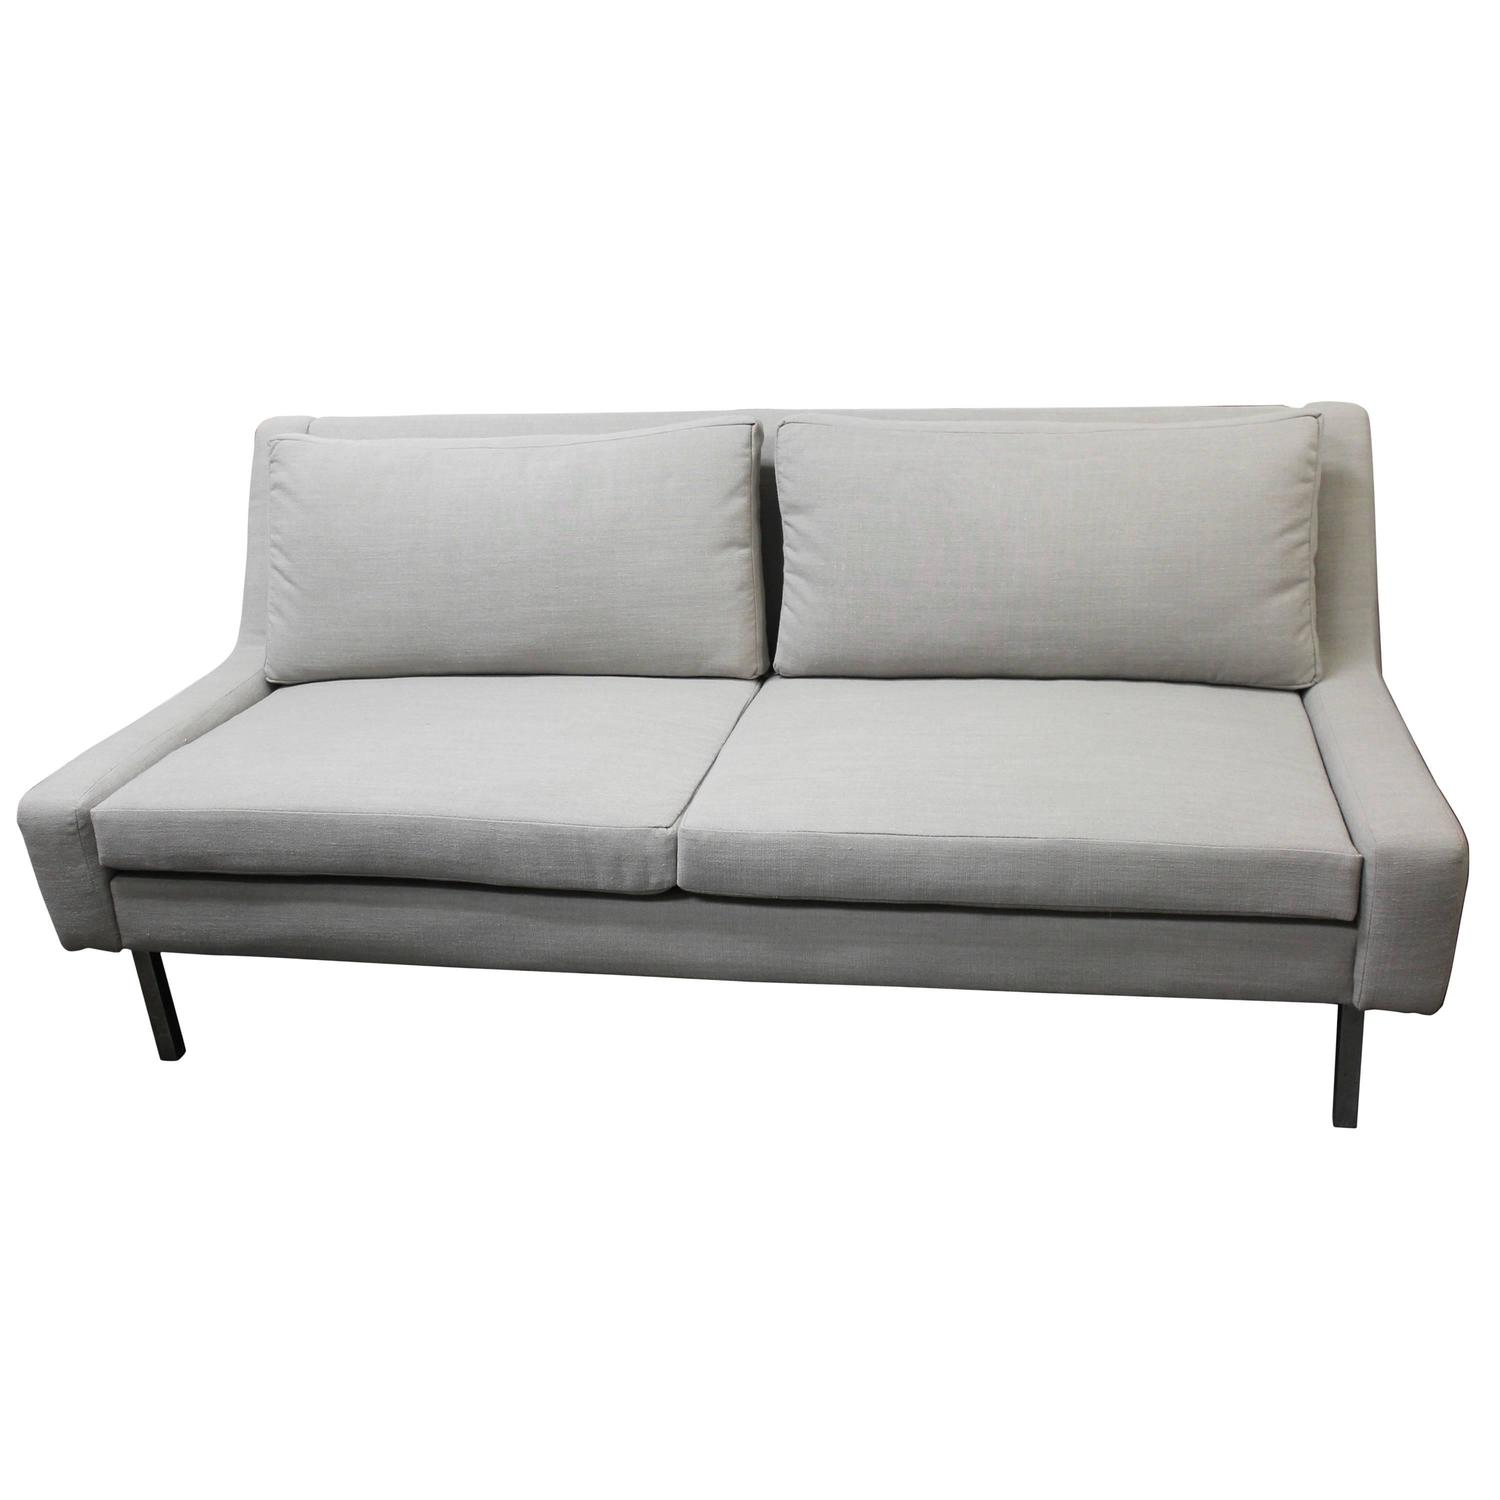 Armless Loveseat In The Style Of Florence Knoll At 1stdibs